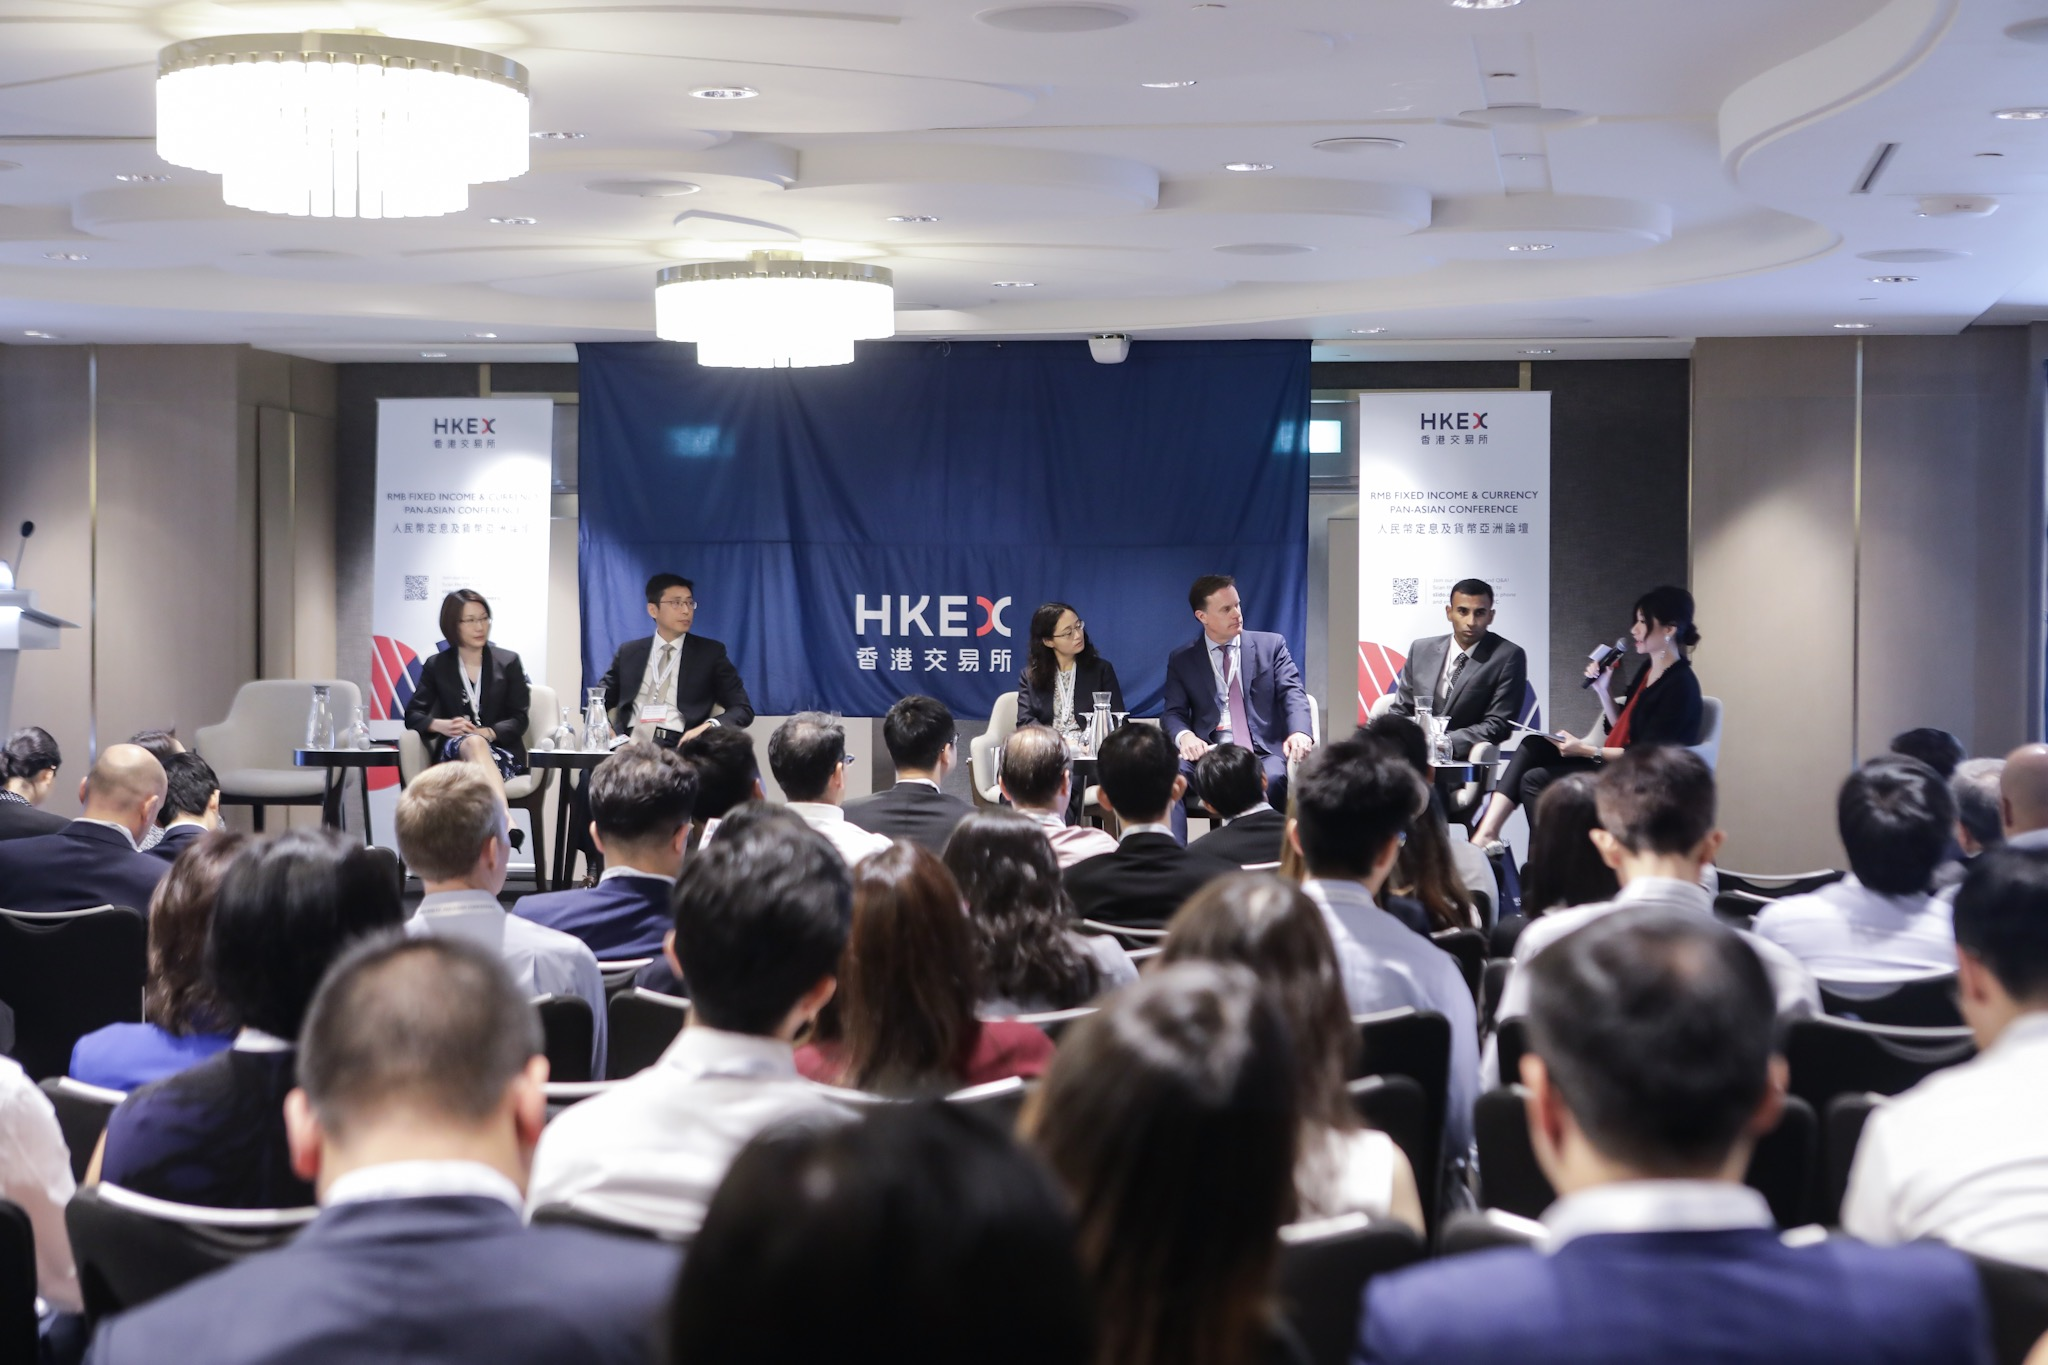 HKEX hosts its RMB FIC Pan-Asian Conference for the first time in Singapore on 4 April 2019